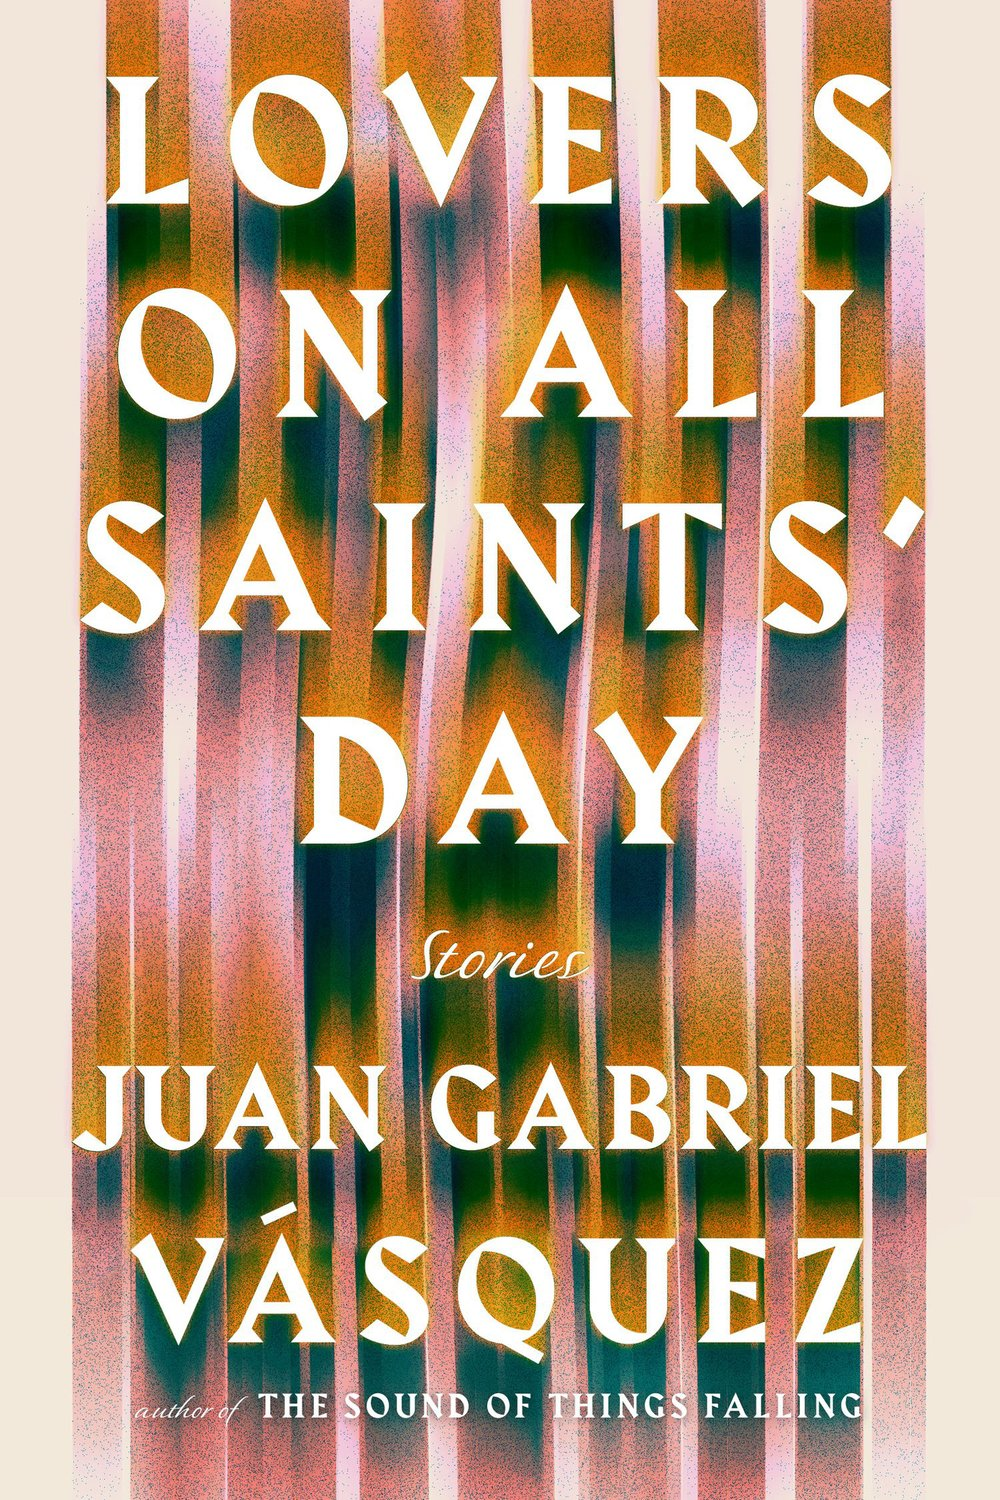 All Saints' Day Lovers.jpg